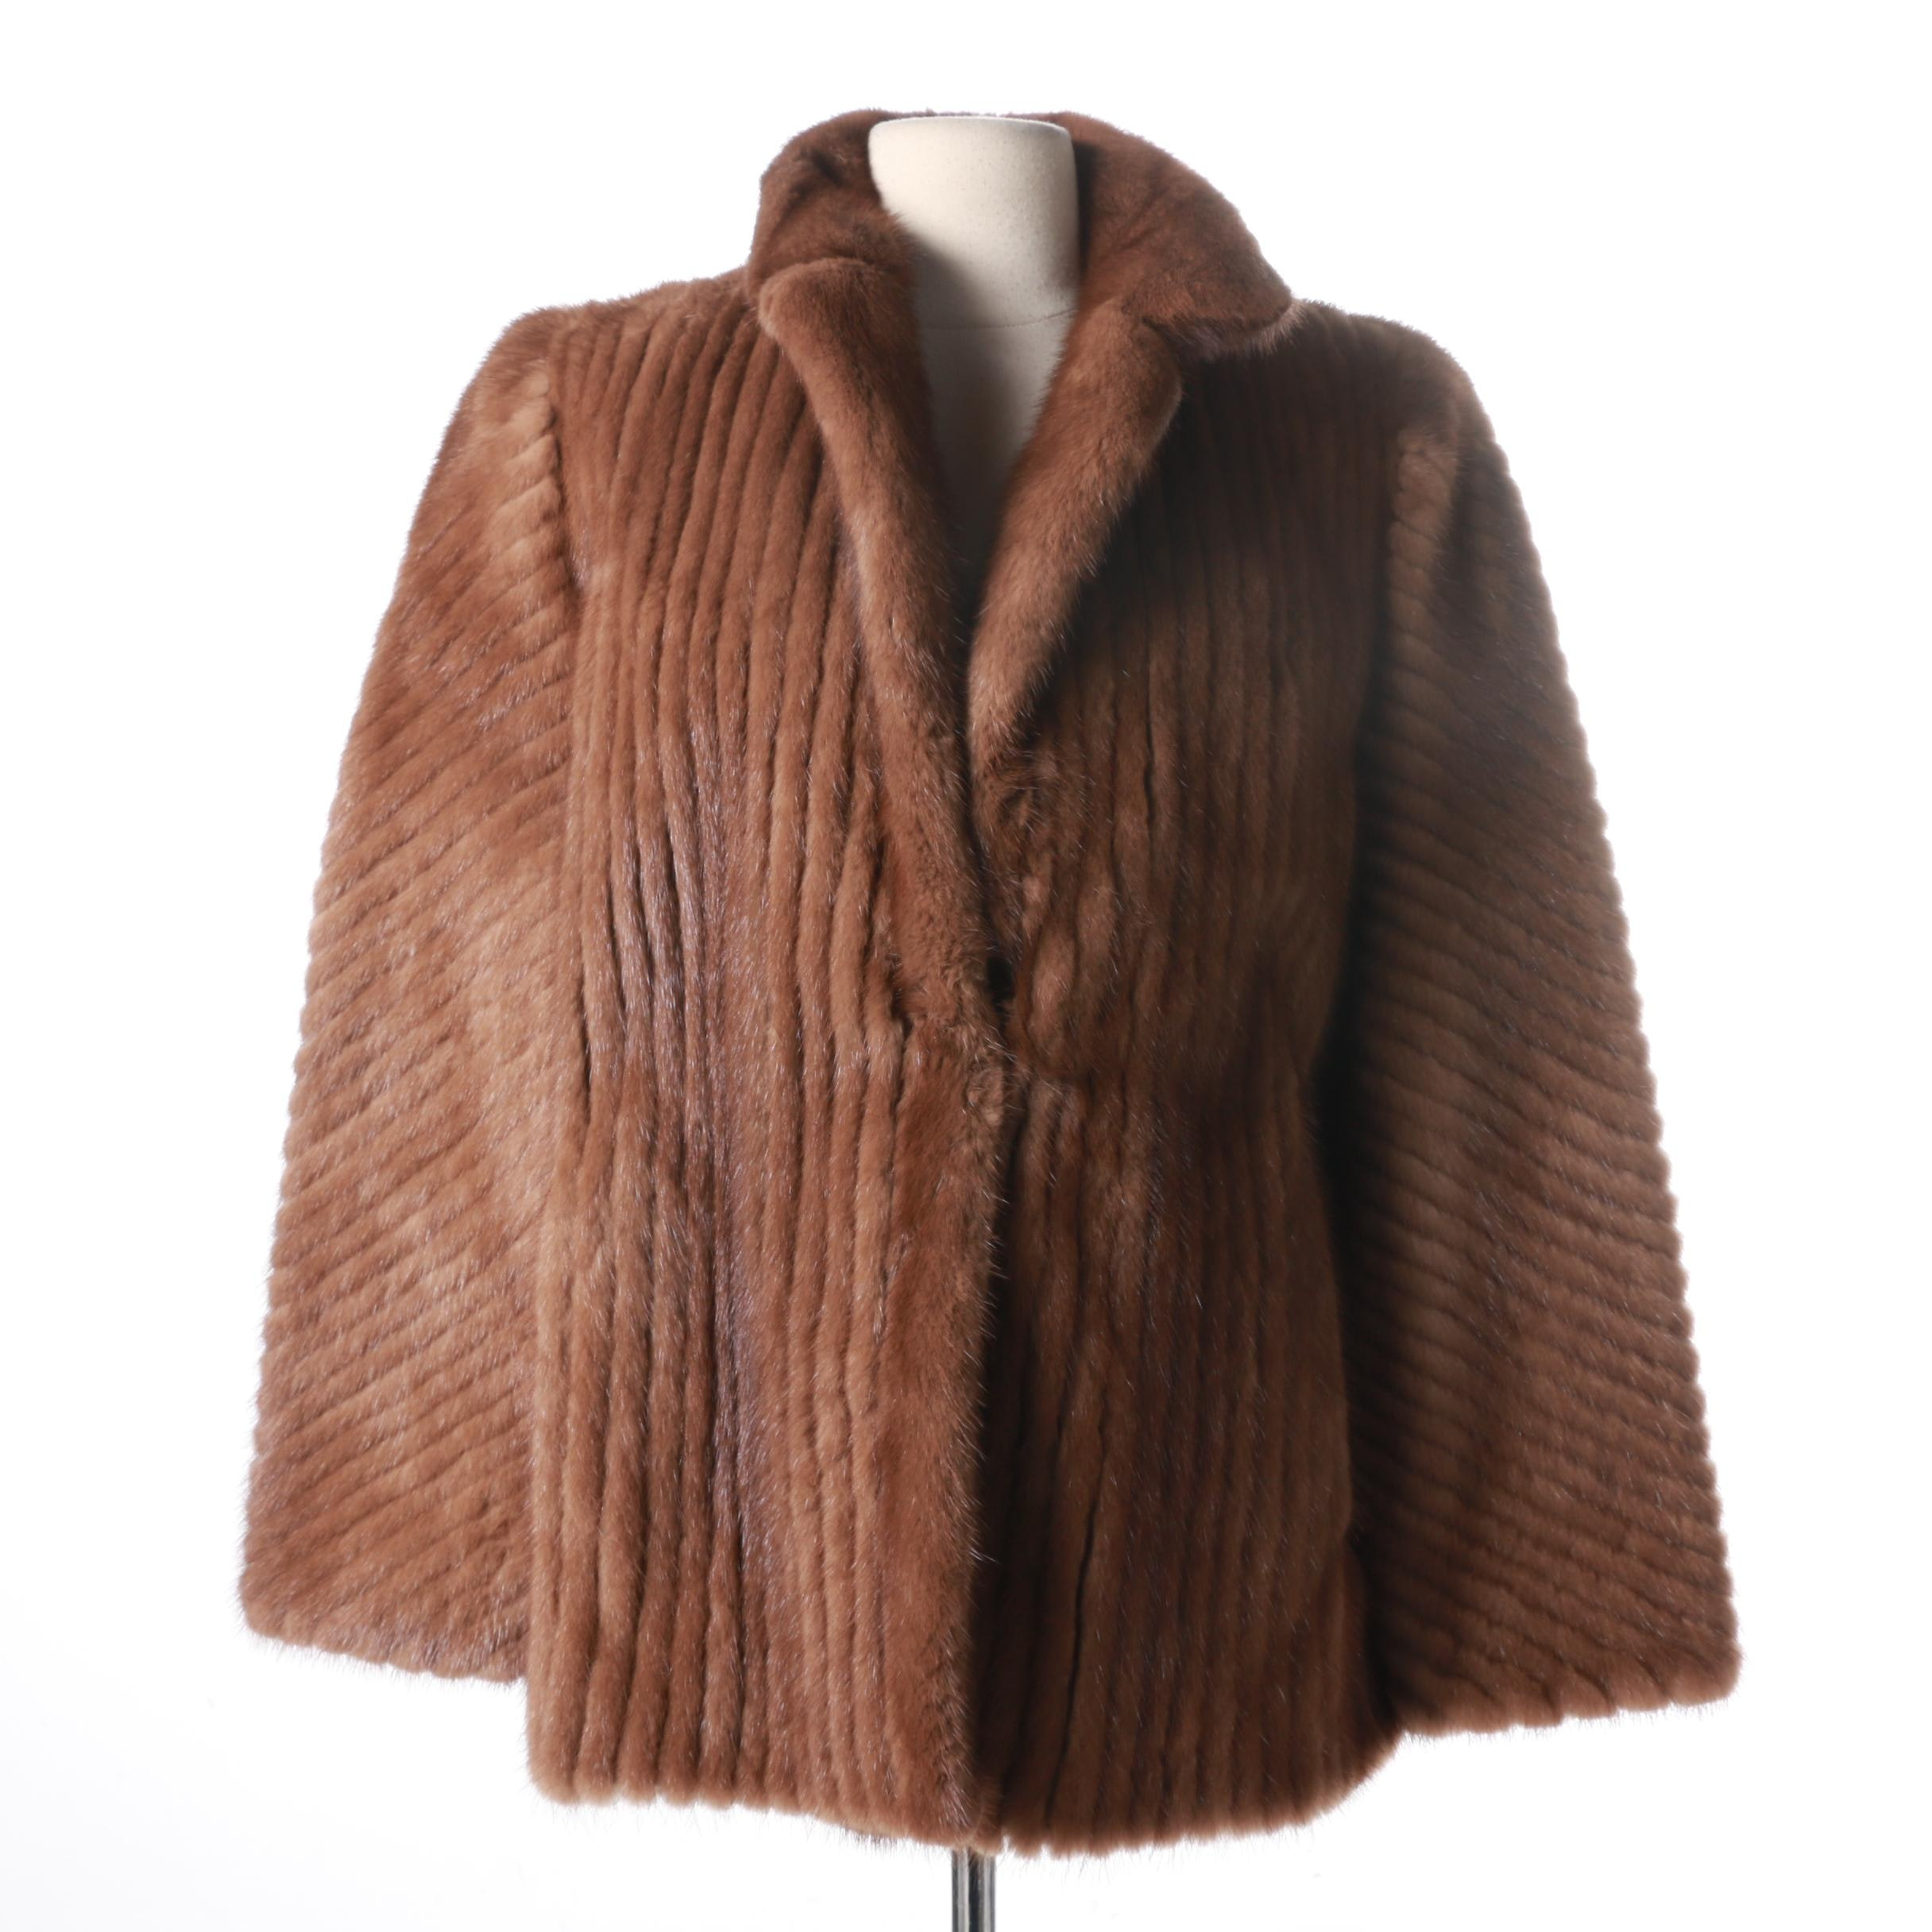 Saga Selected Mink Fur Coat